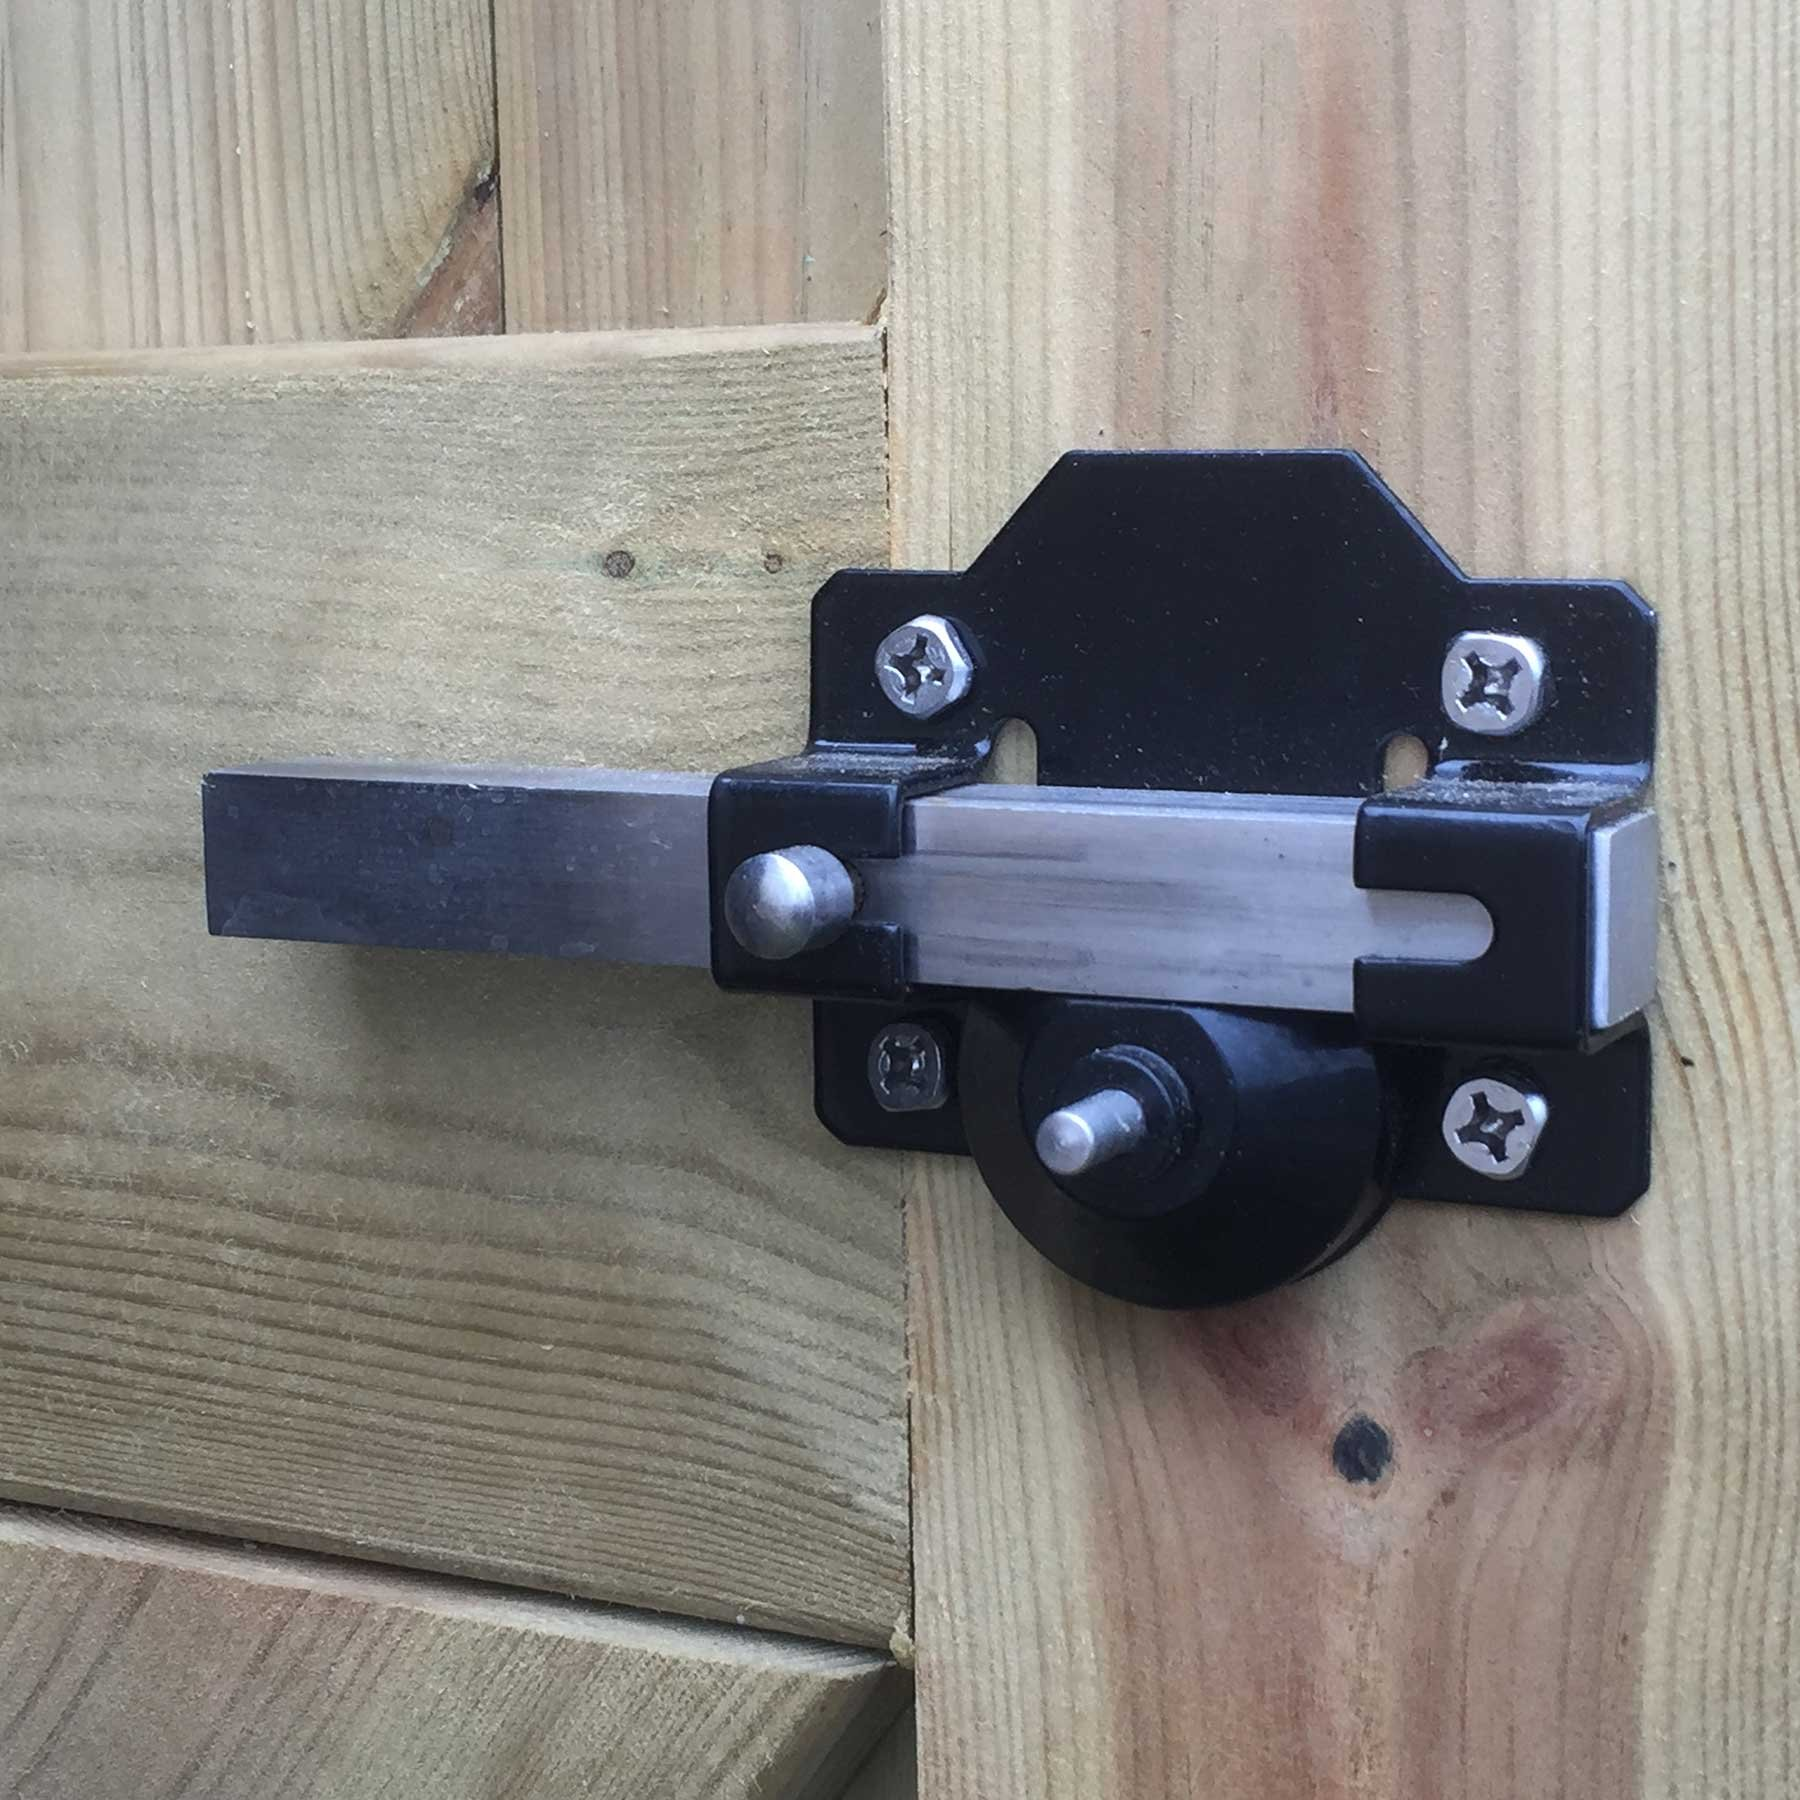 Gatemate Security Garden Shed Gate Lock Long Throw Bolt Double Locking /& Handle